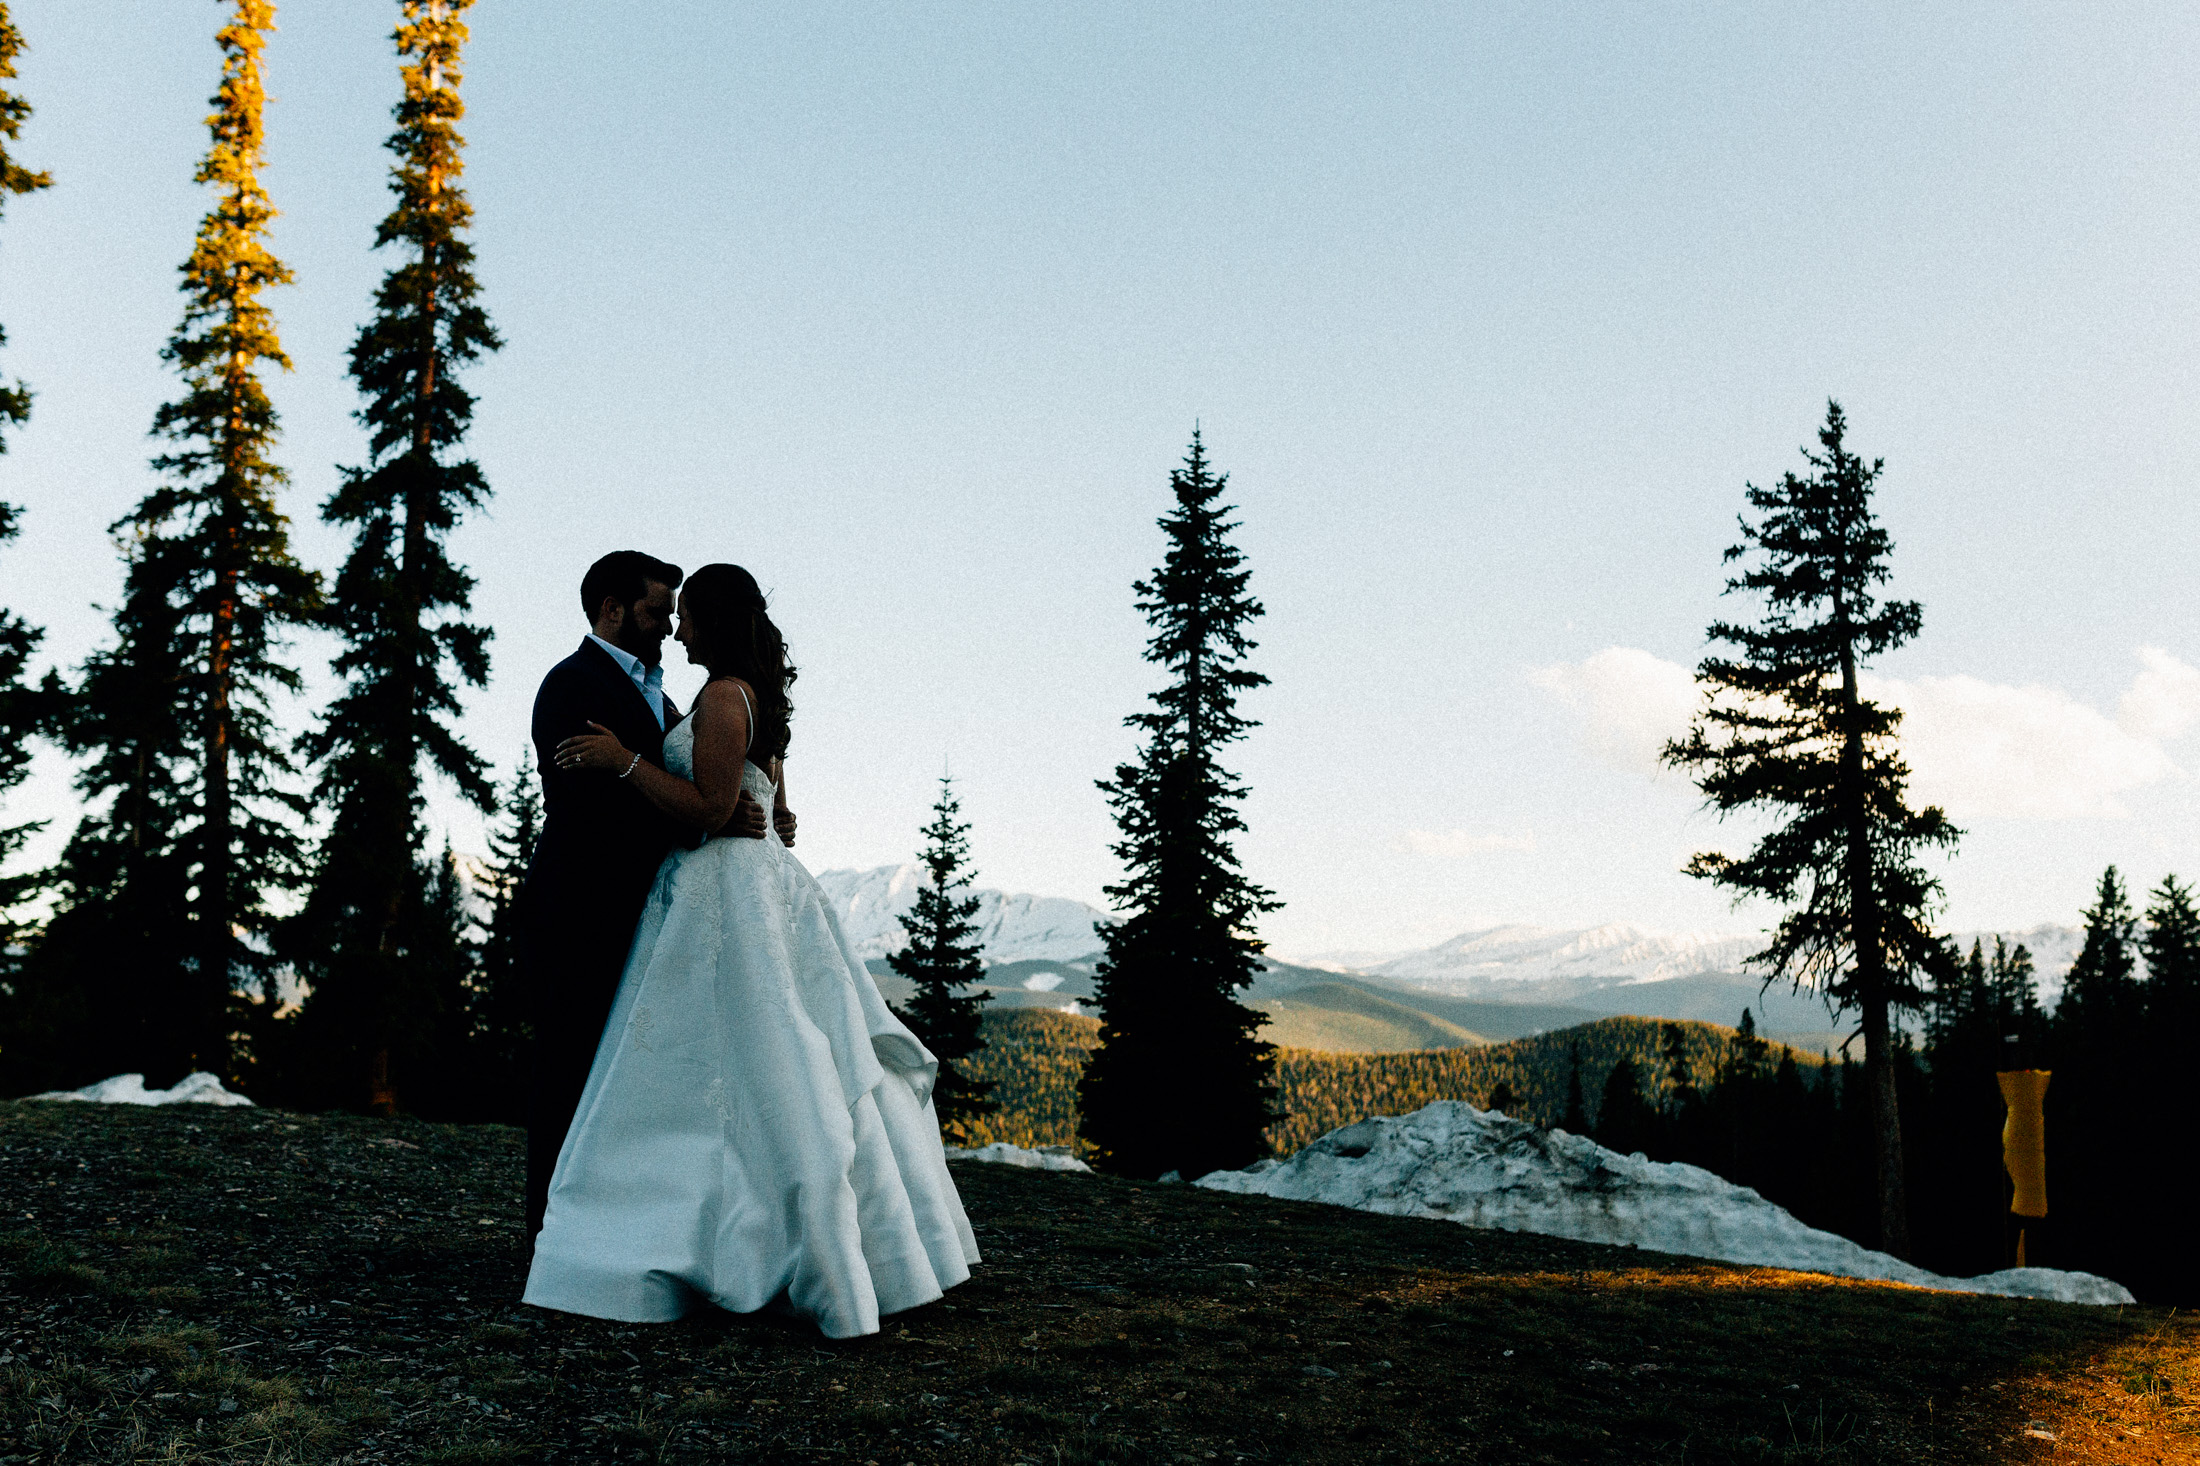 Bride and groom embrace at sunset in front of pine trees and snow capped mountains at Timber Ridge Lodge.